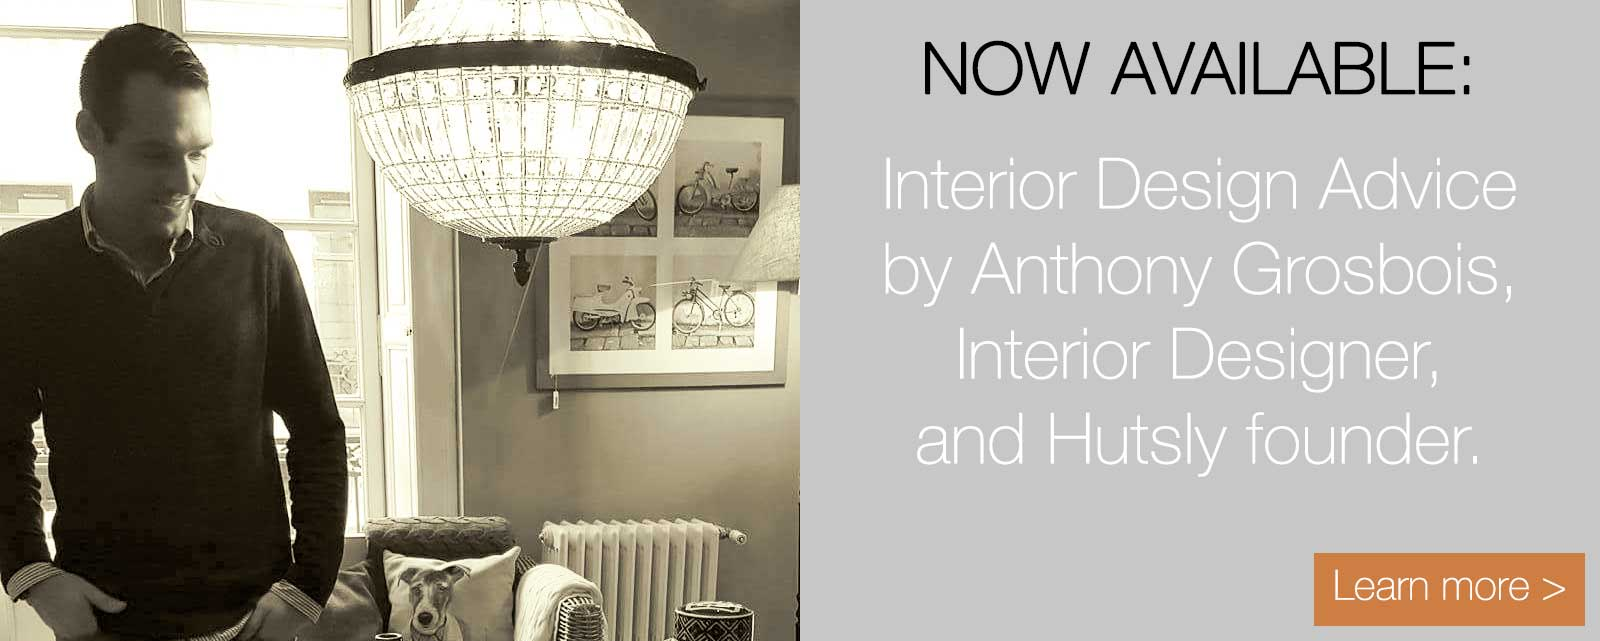 Interior Design Advice by Anthony Grosbois - Hutsly